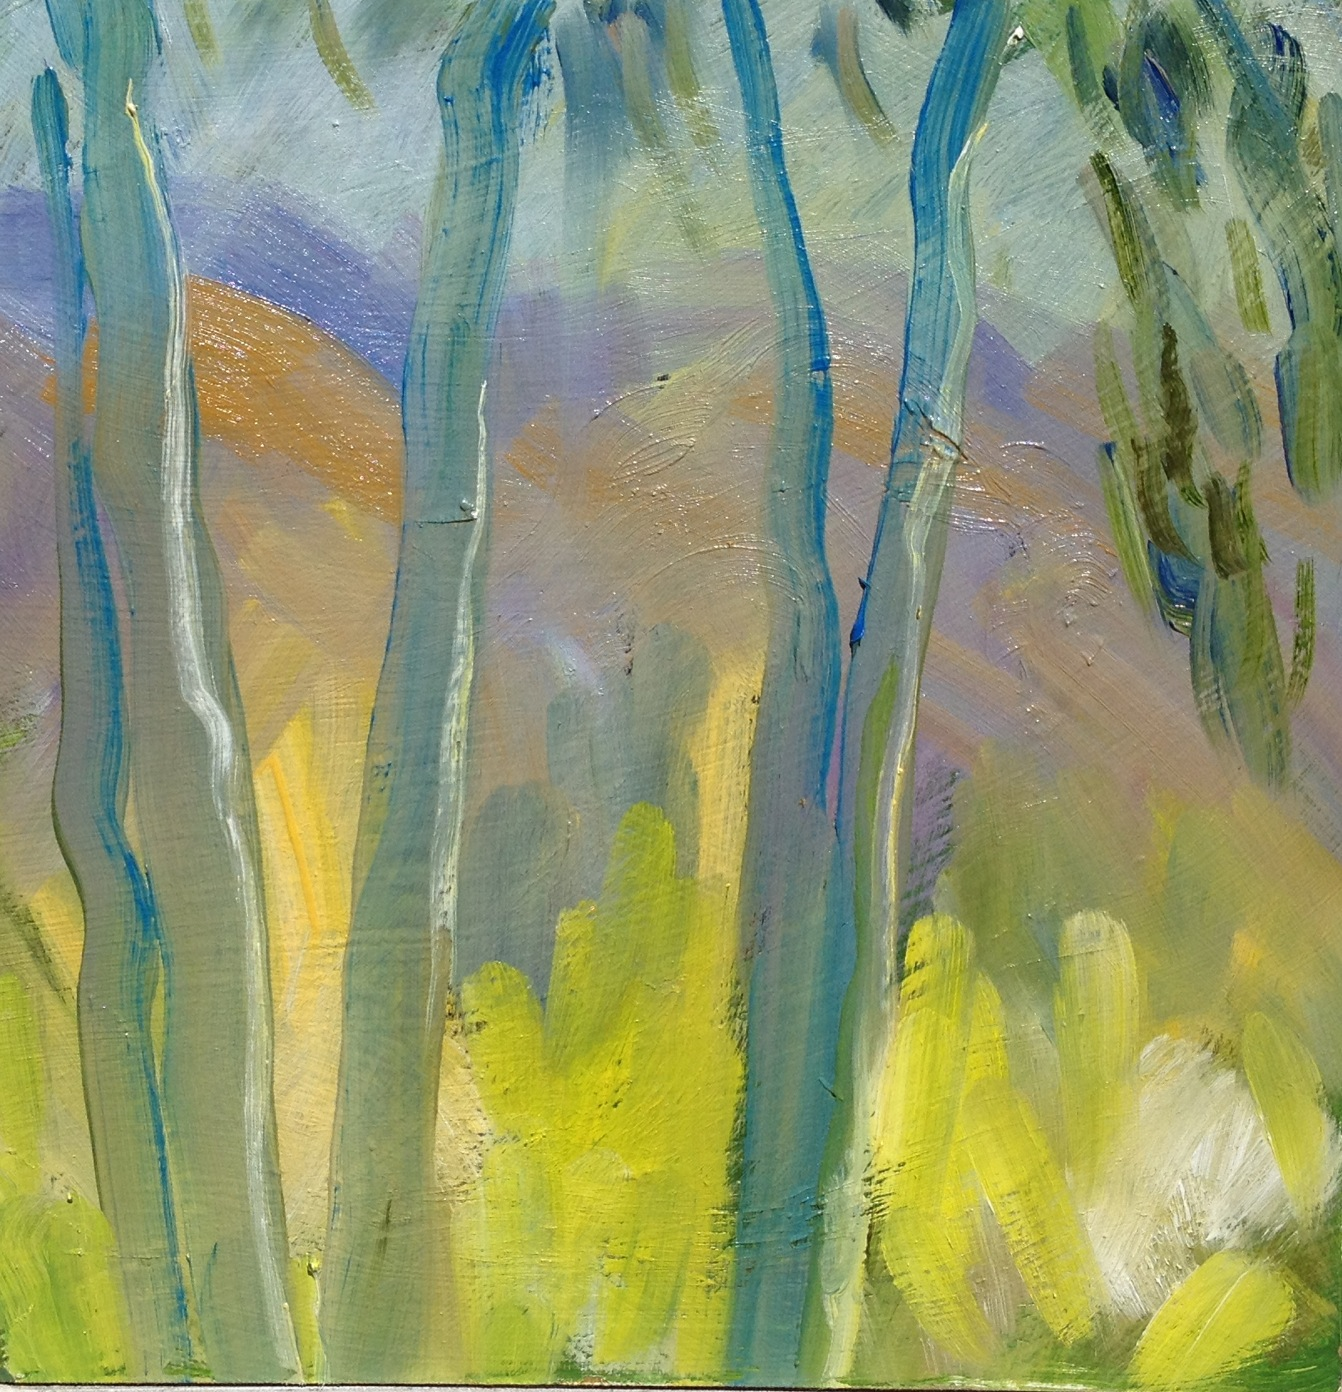 Eucalyptus at Ranch, 10 x 10 inches